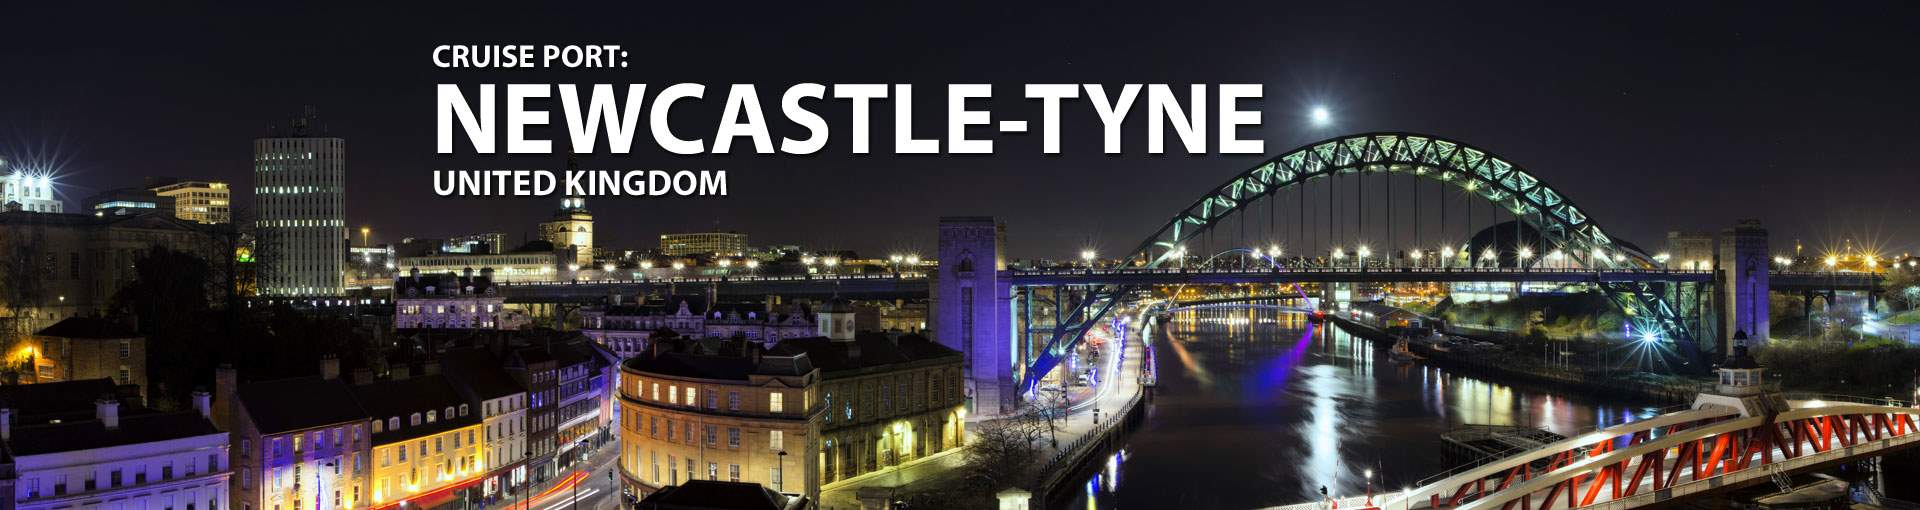 Cruises to Newcastle-Tyne, United Kingdom